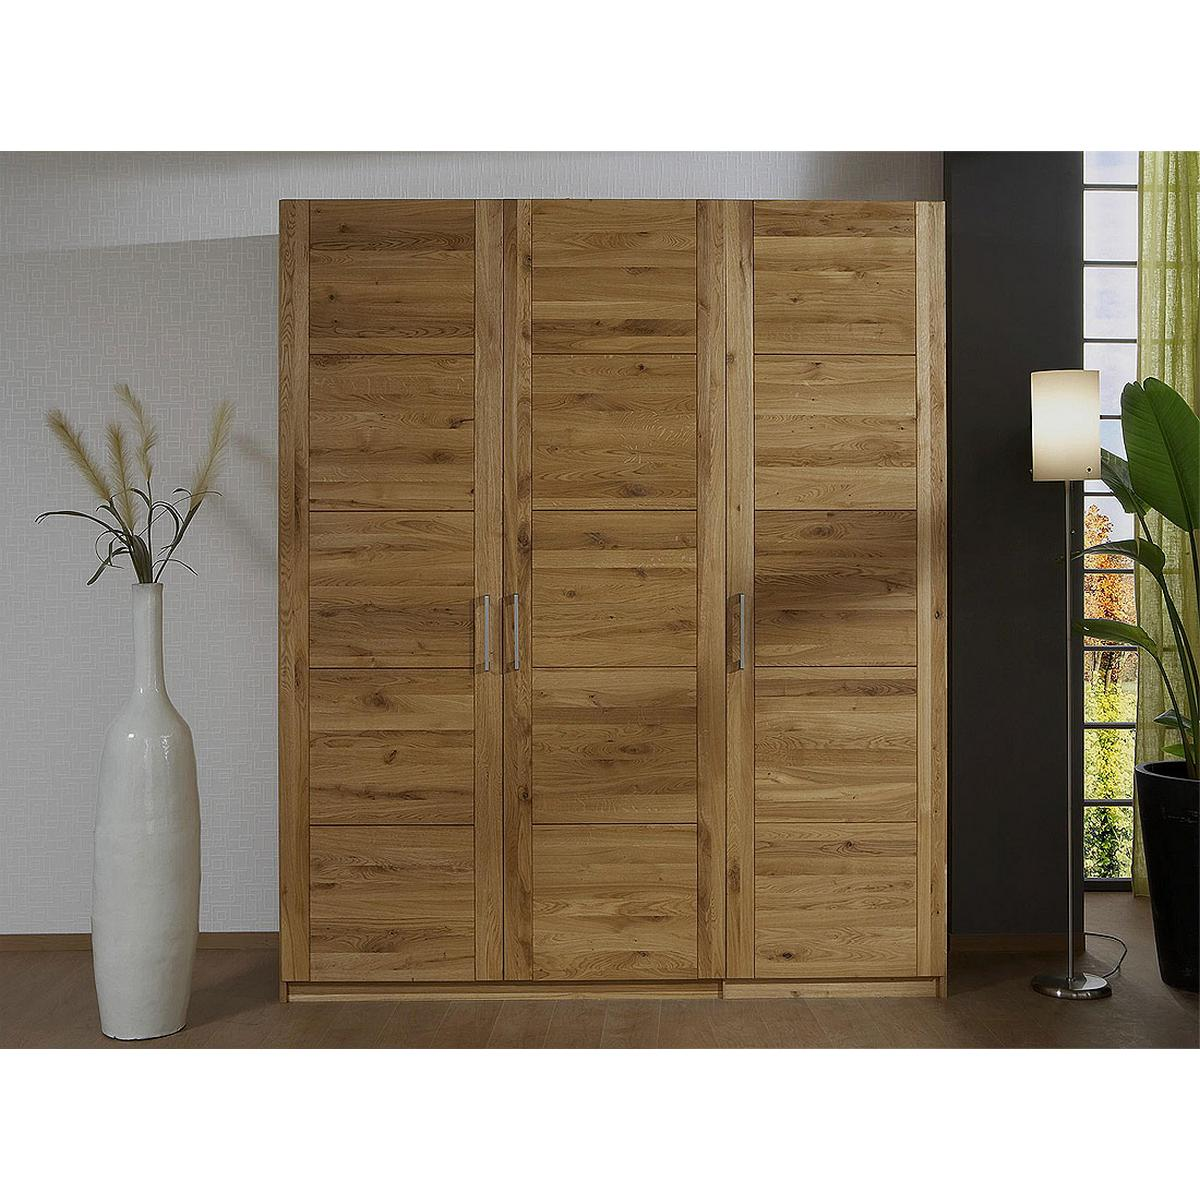 echtholz kleiderschrank eiche 3 t rig quattra wildeiche massiv ge lt bei casa de mobila. Black Bedroom Furniture Sets. Home Design Ideas